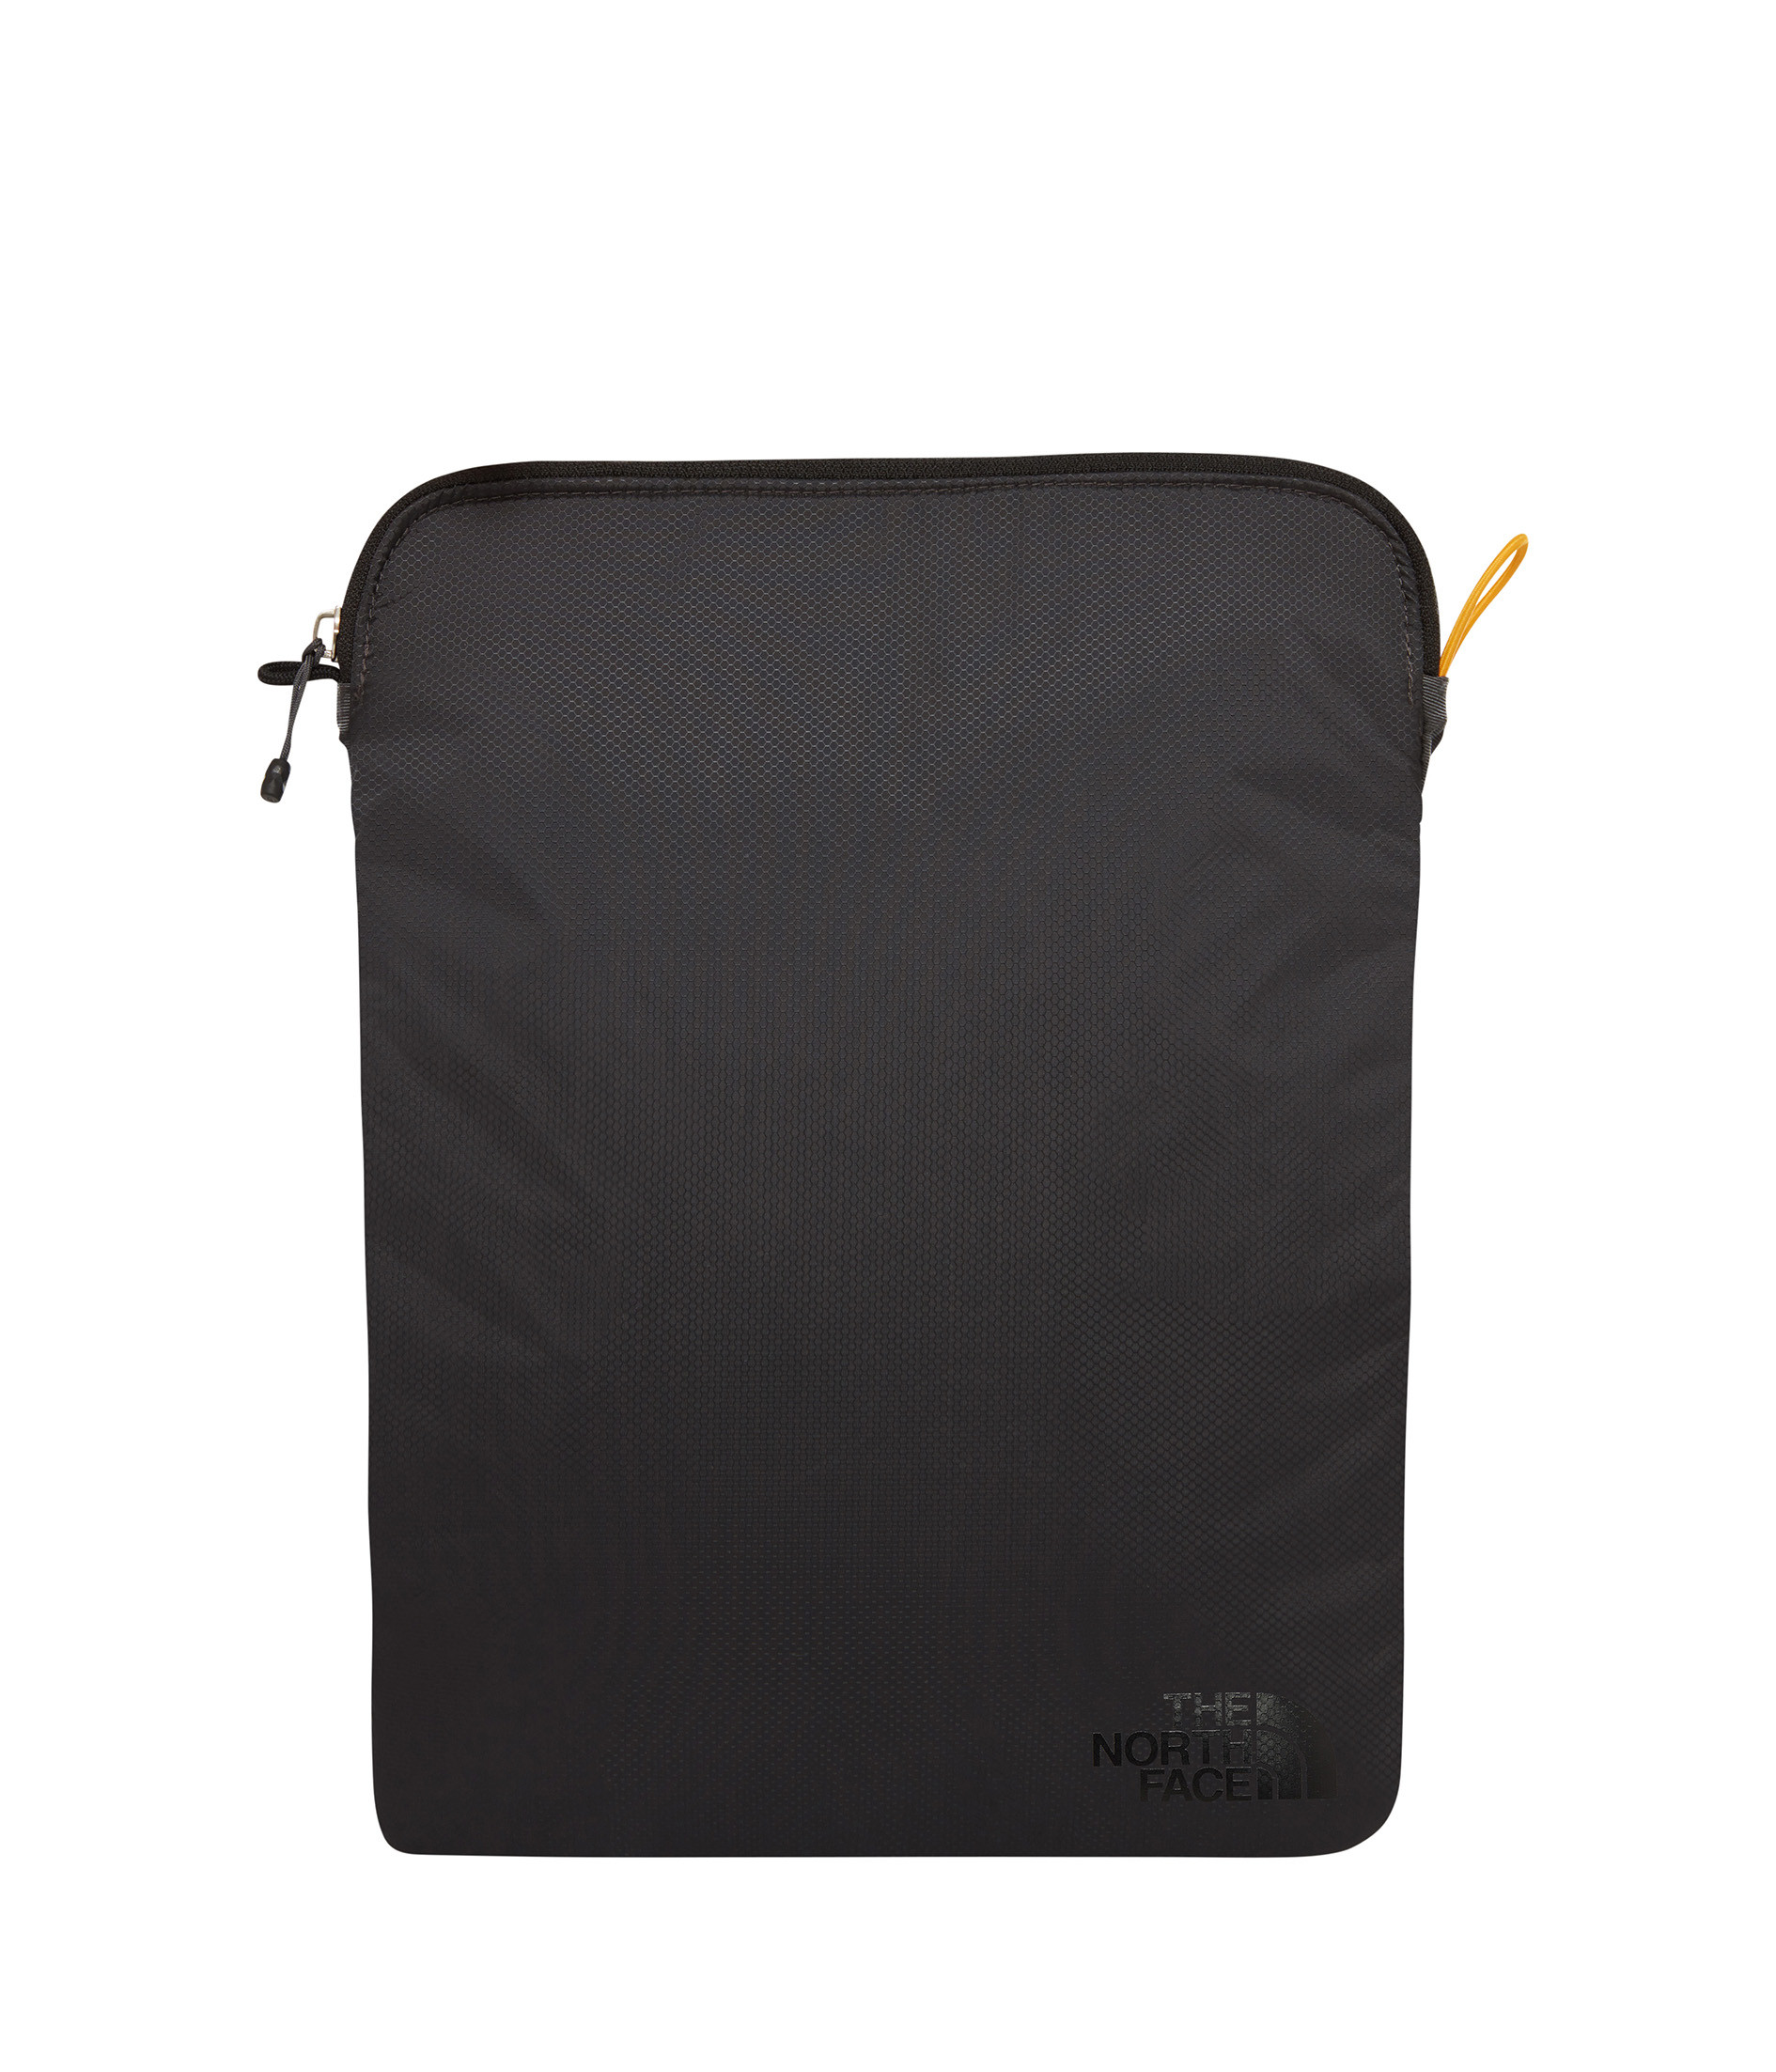 "The North Face Flyweight 13"" Laptop Sleeve"